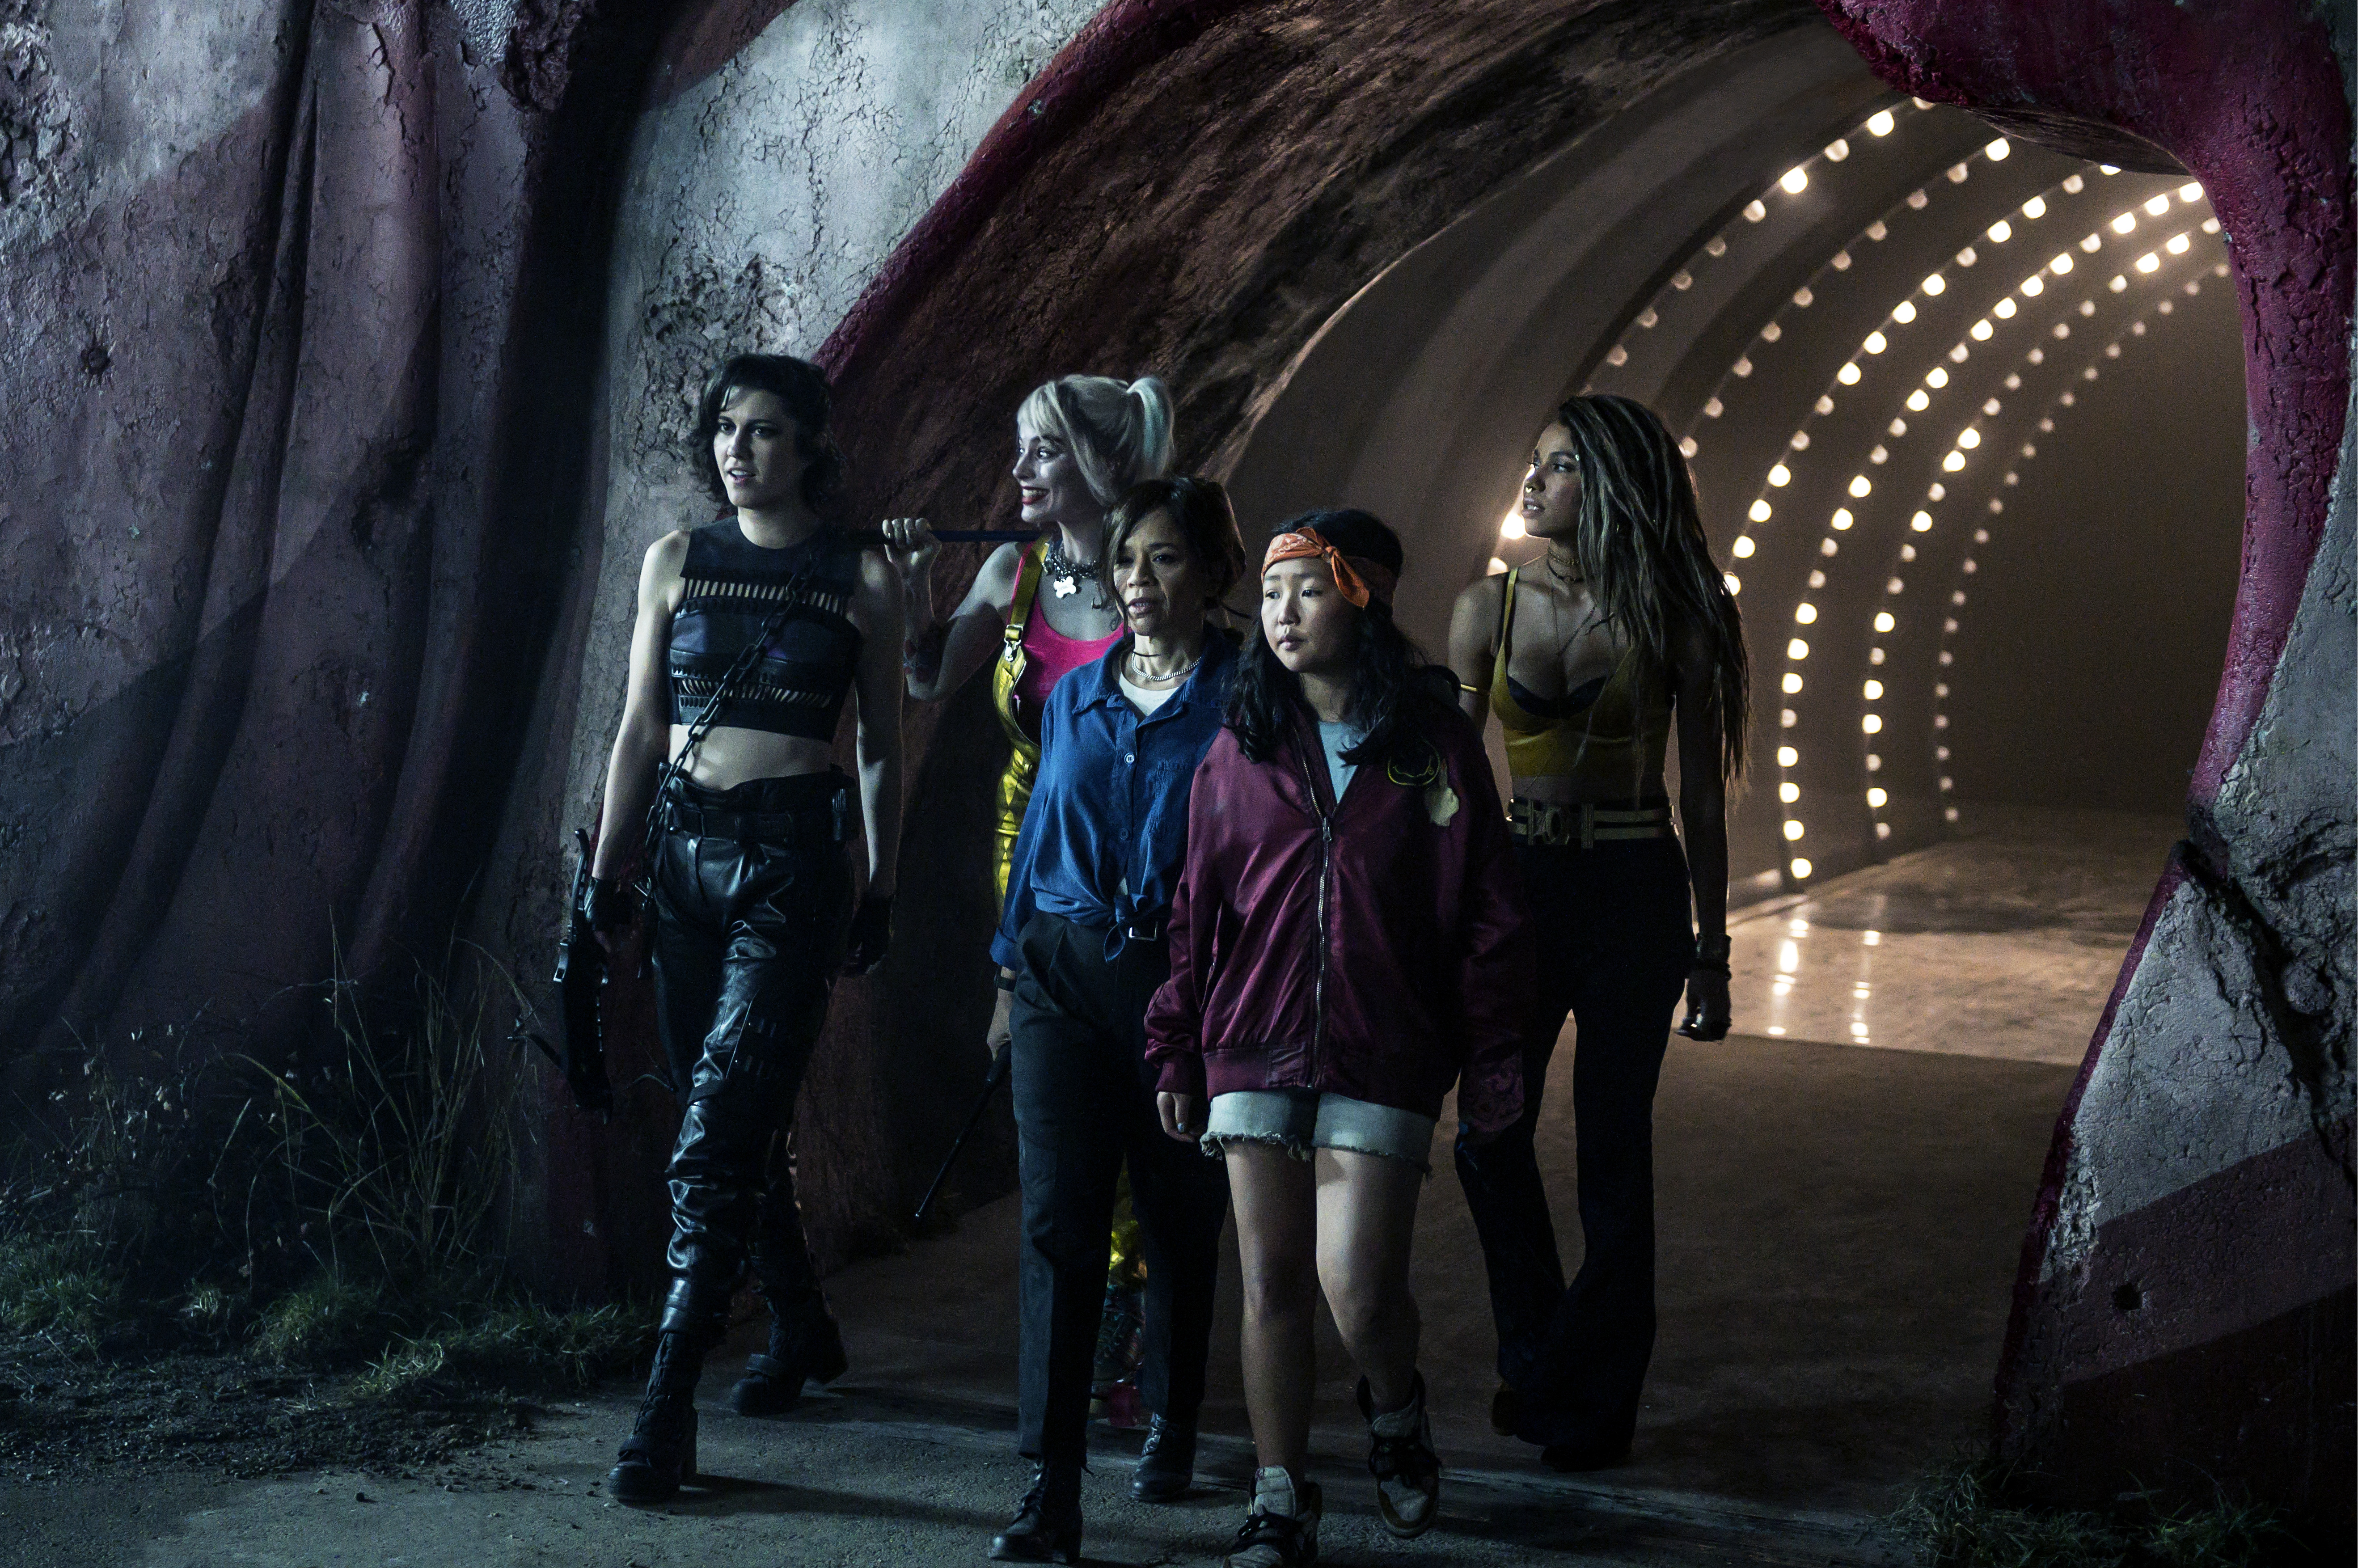 (L-r) Mary Elizabeth Winstead as Huntress, Margot Robbie as Harley Quinn, Rosie Perez as Renee Montoya,  Ella Jay Basco as Cassandra Cain and Jurnee Smollett-Bell as Black Canary in Warner Bros. Pictures' 'Birds of Prey (And The Fantabulous Emancipation of Harley Quinn.'